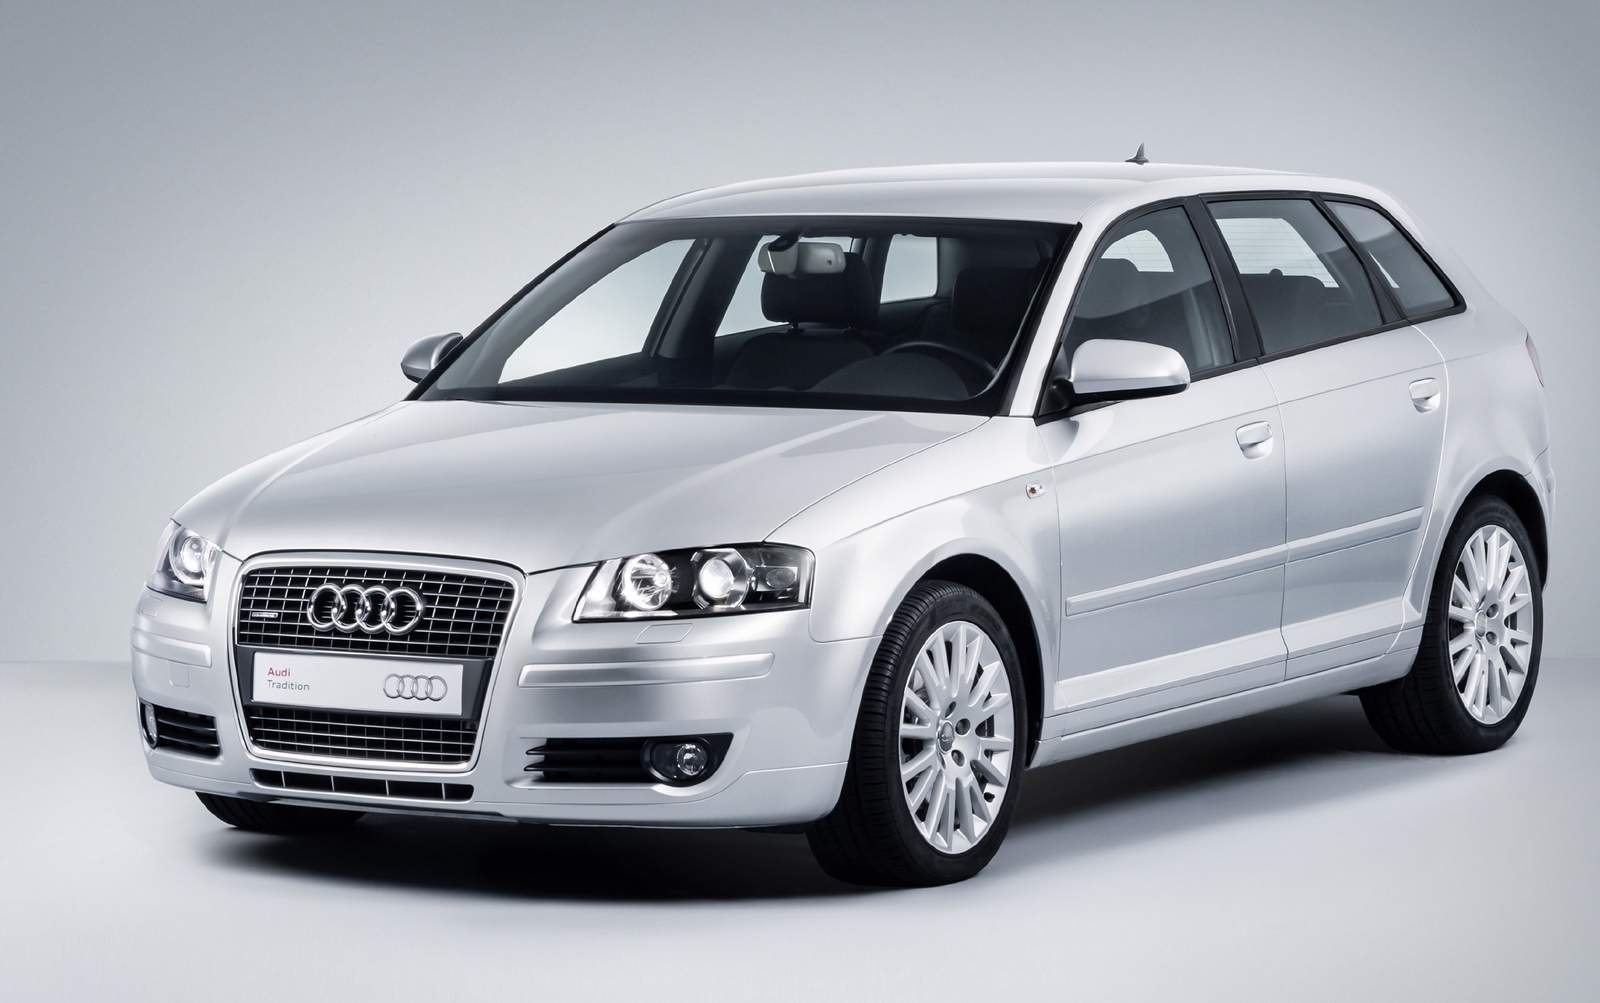 audi a3 sportback 2009 recall por problema no esc abs car blog br. Black Bedroom Furniture Sets. Home Design Ideas